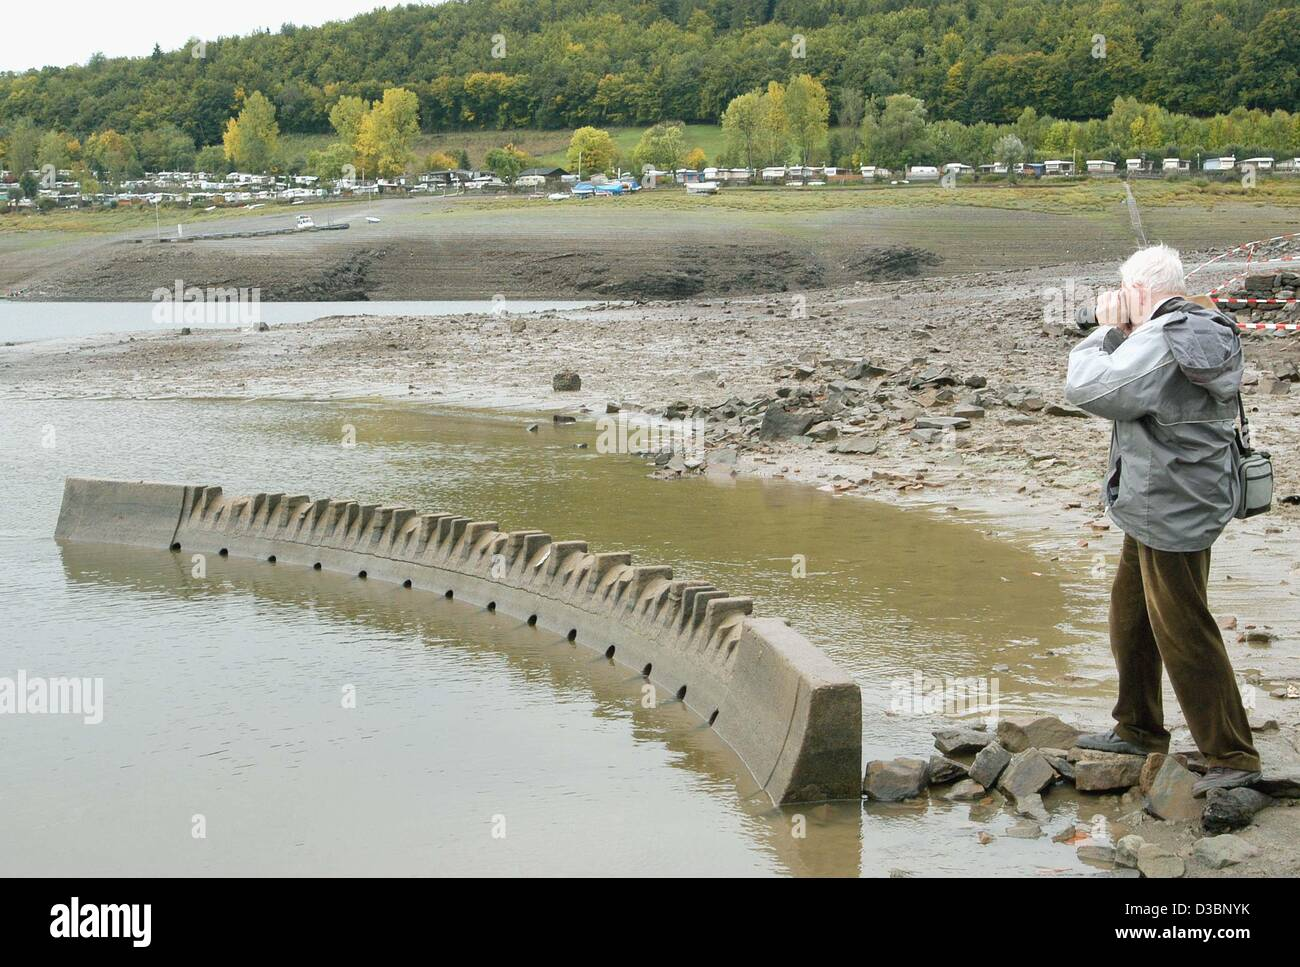 (dpa) - A man takes a photo of the model of the Edersee Dam which was exposed on the bottom of the lake due to the - Stock Image